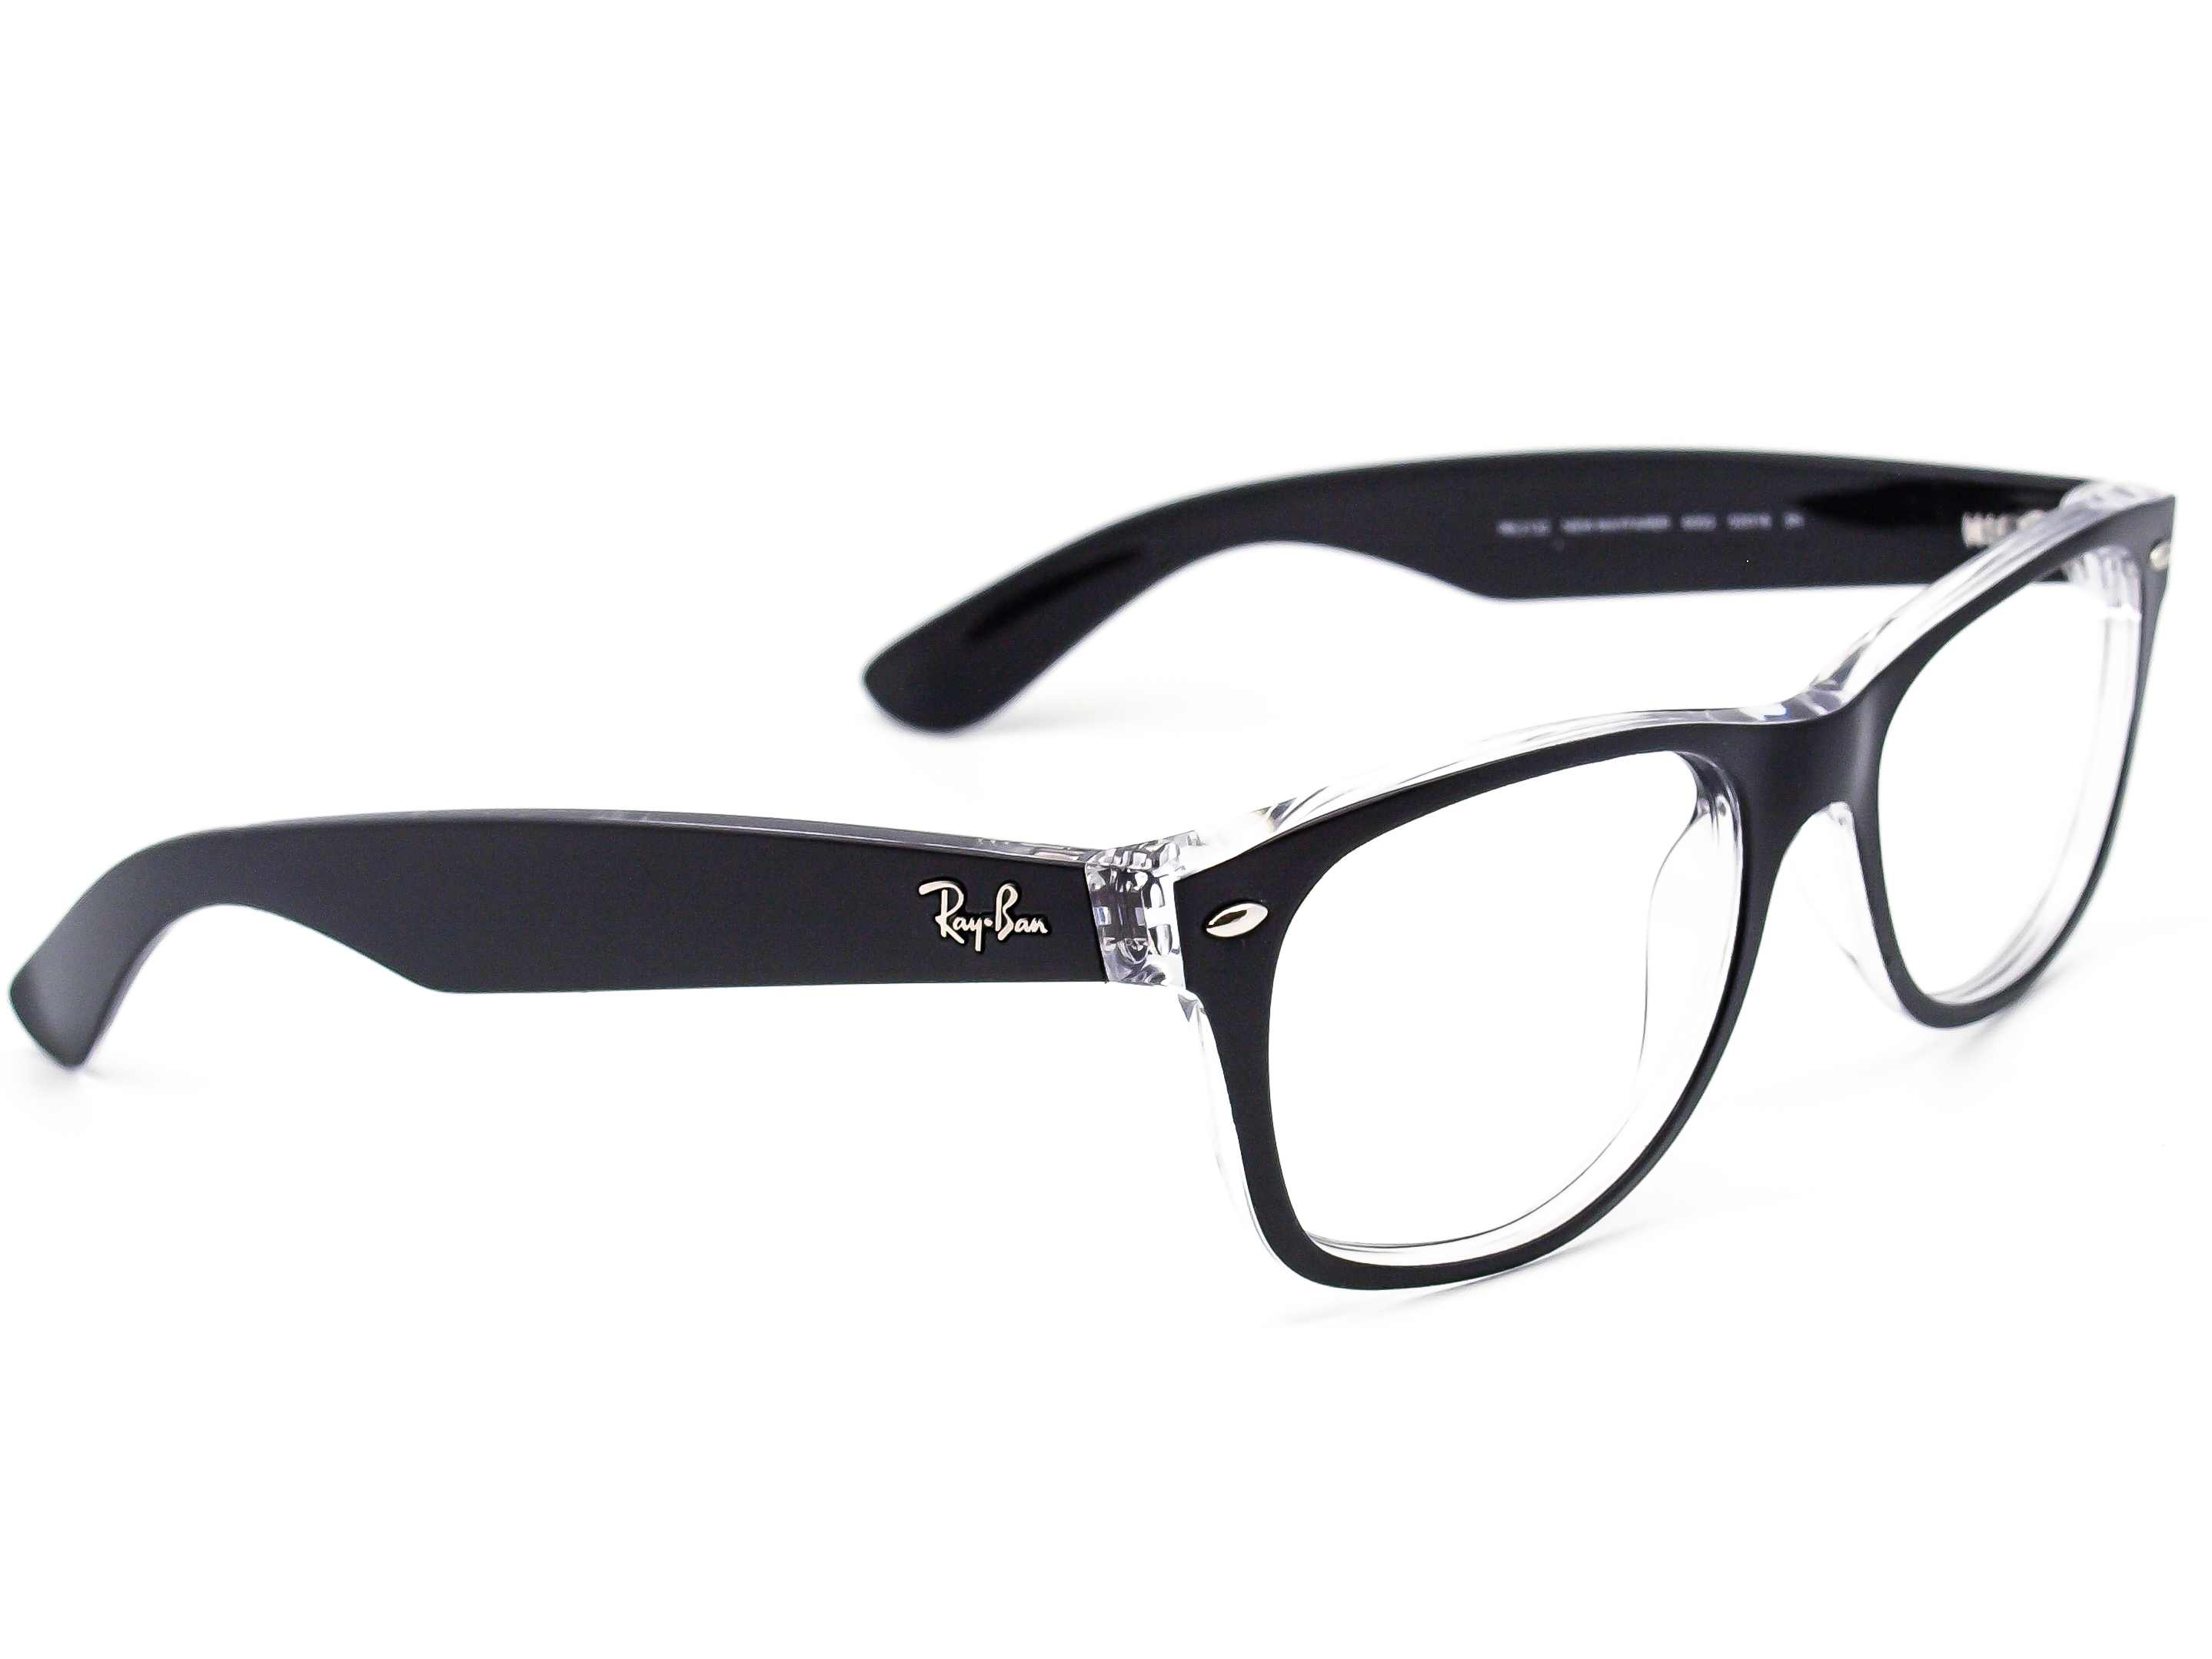 ed8ad2514d6a7 Ray Ban RB 2132 Wayfarer 6052 Sunglasses Frame Only